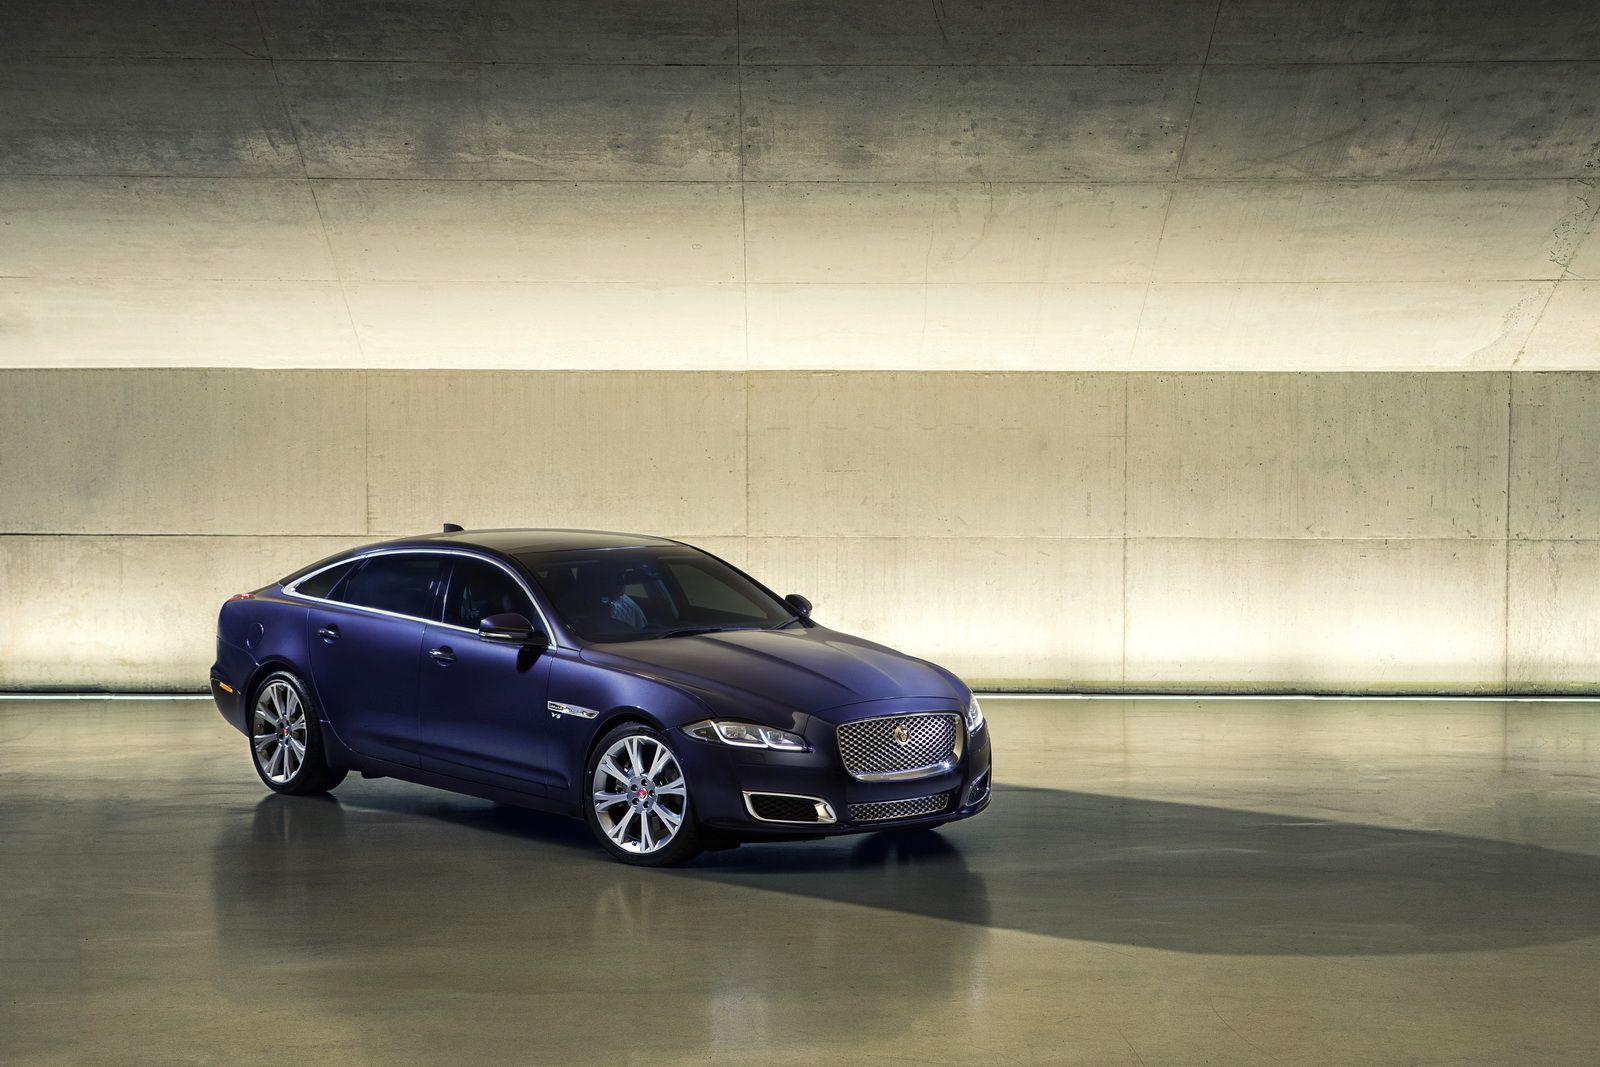 New jaguar xj will be just as stylish but even more advanced